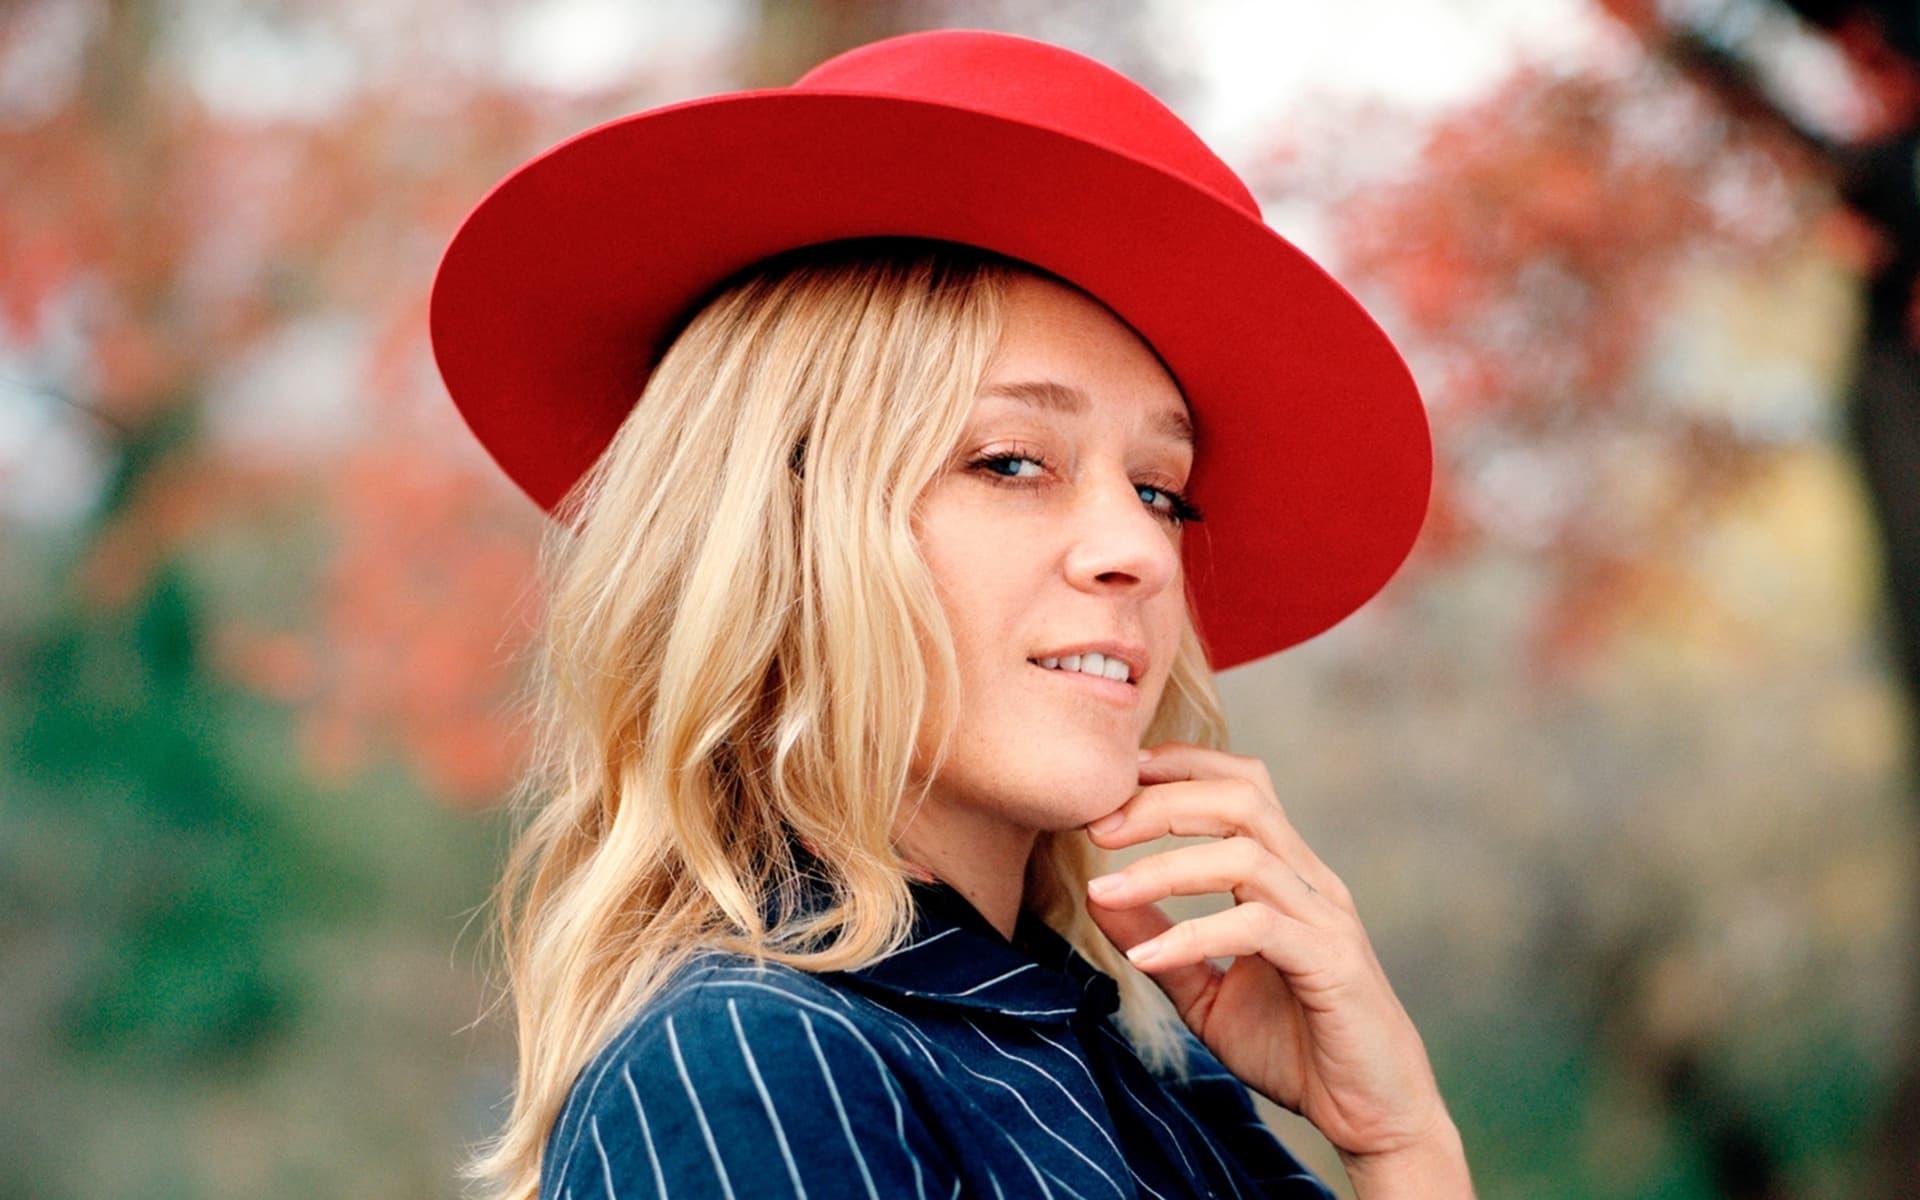 chloe sevigny red hat wallpaper 61536